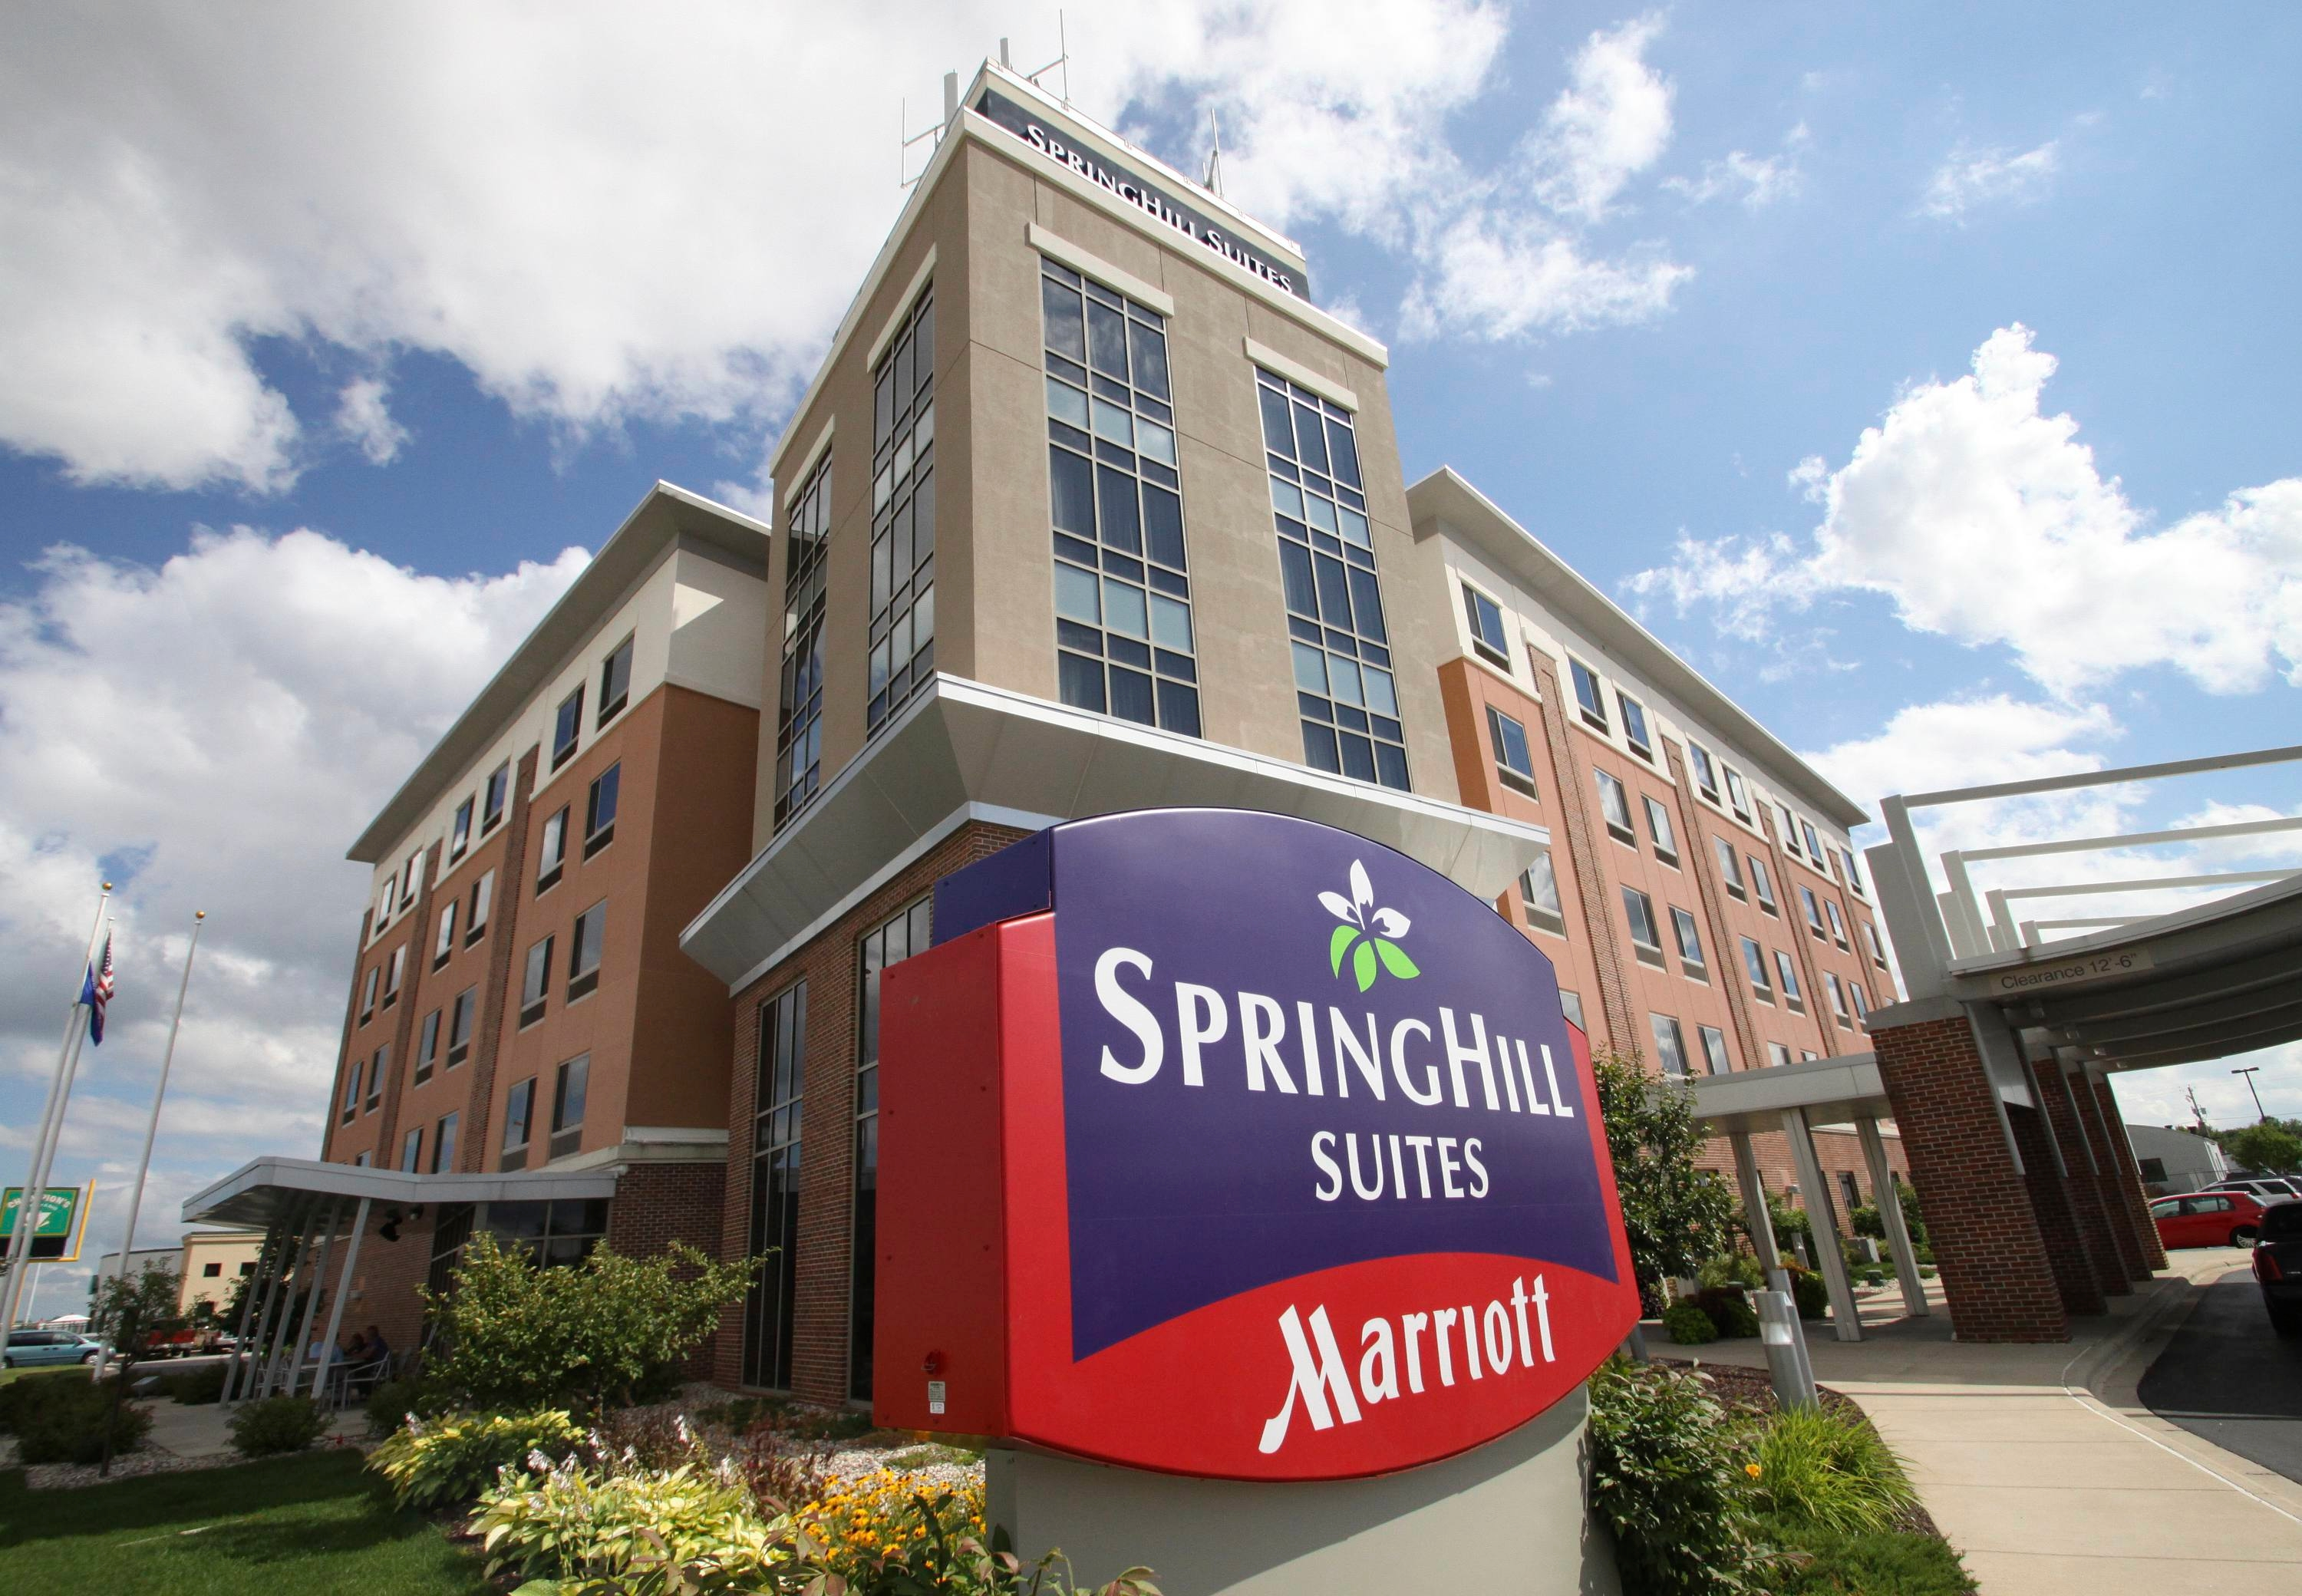 SpringHill Suites by Marriott Green Bay image 3